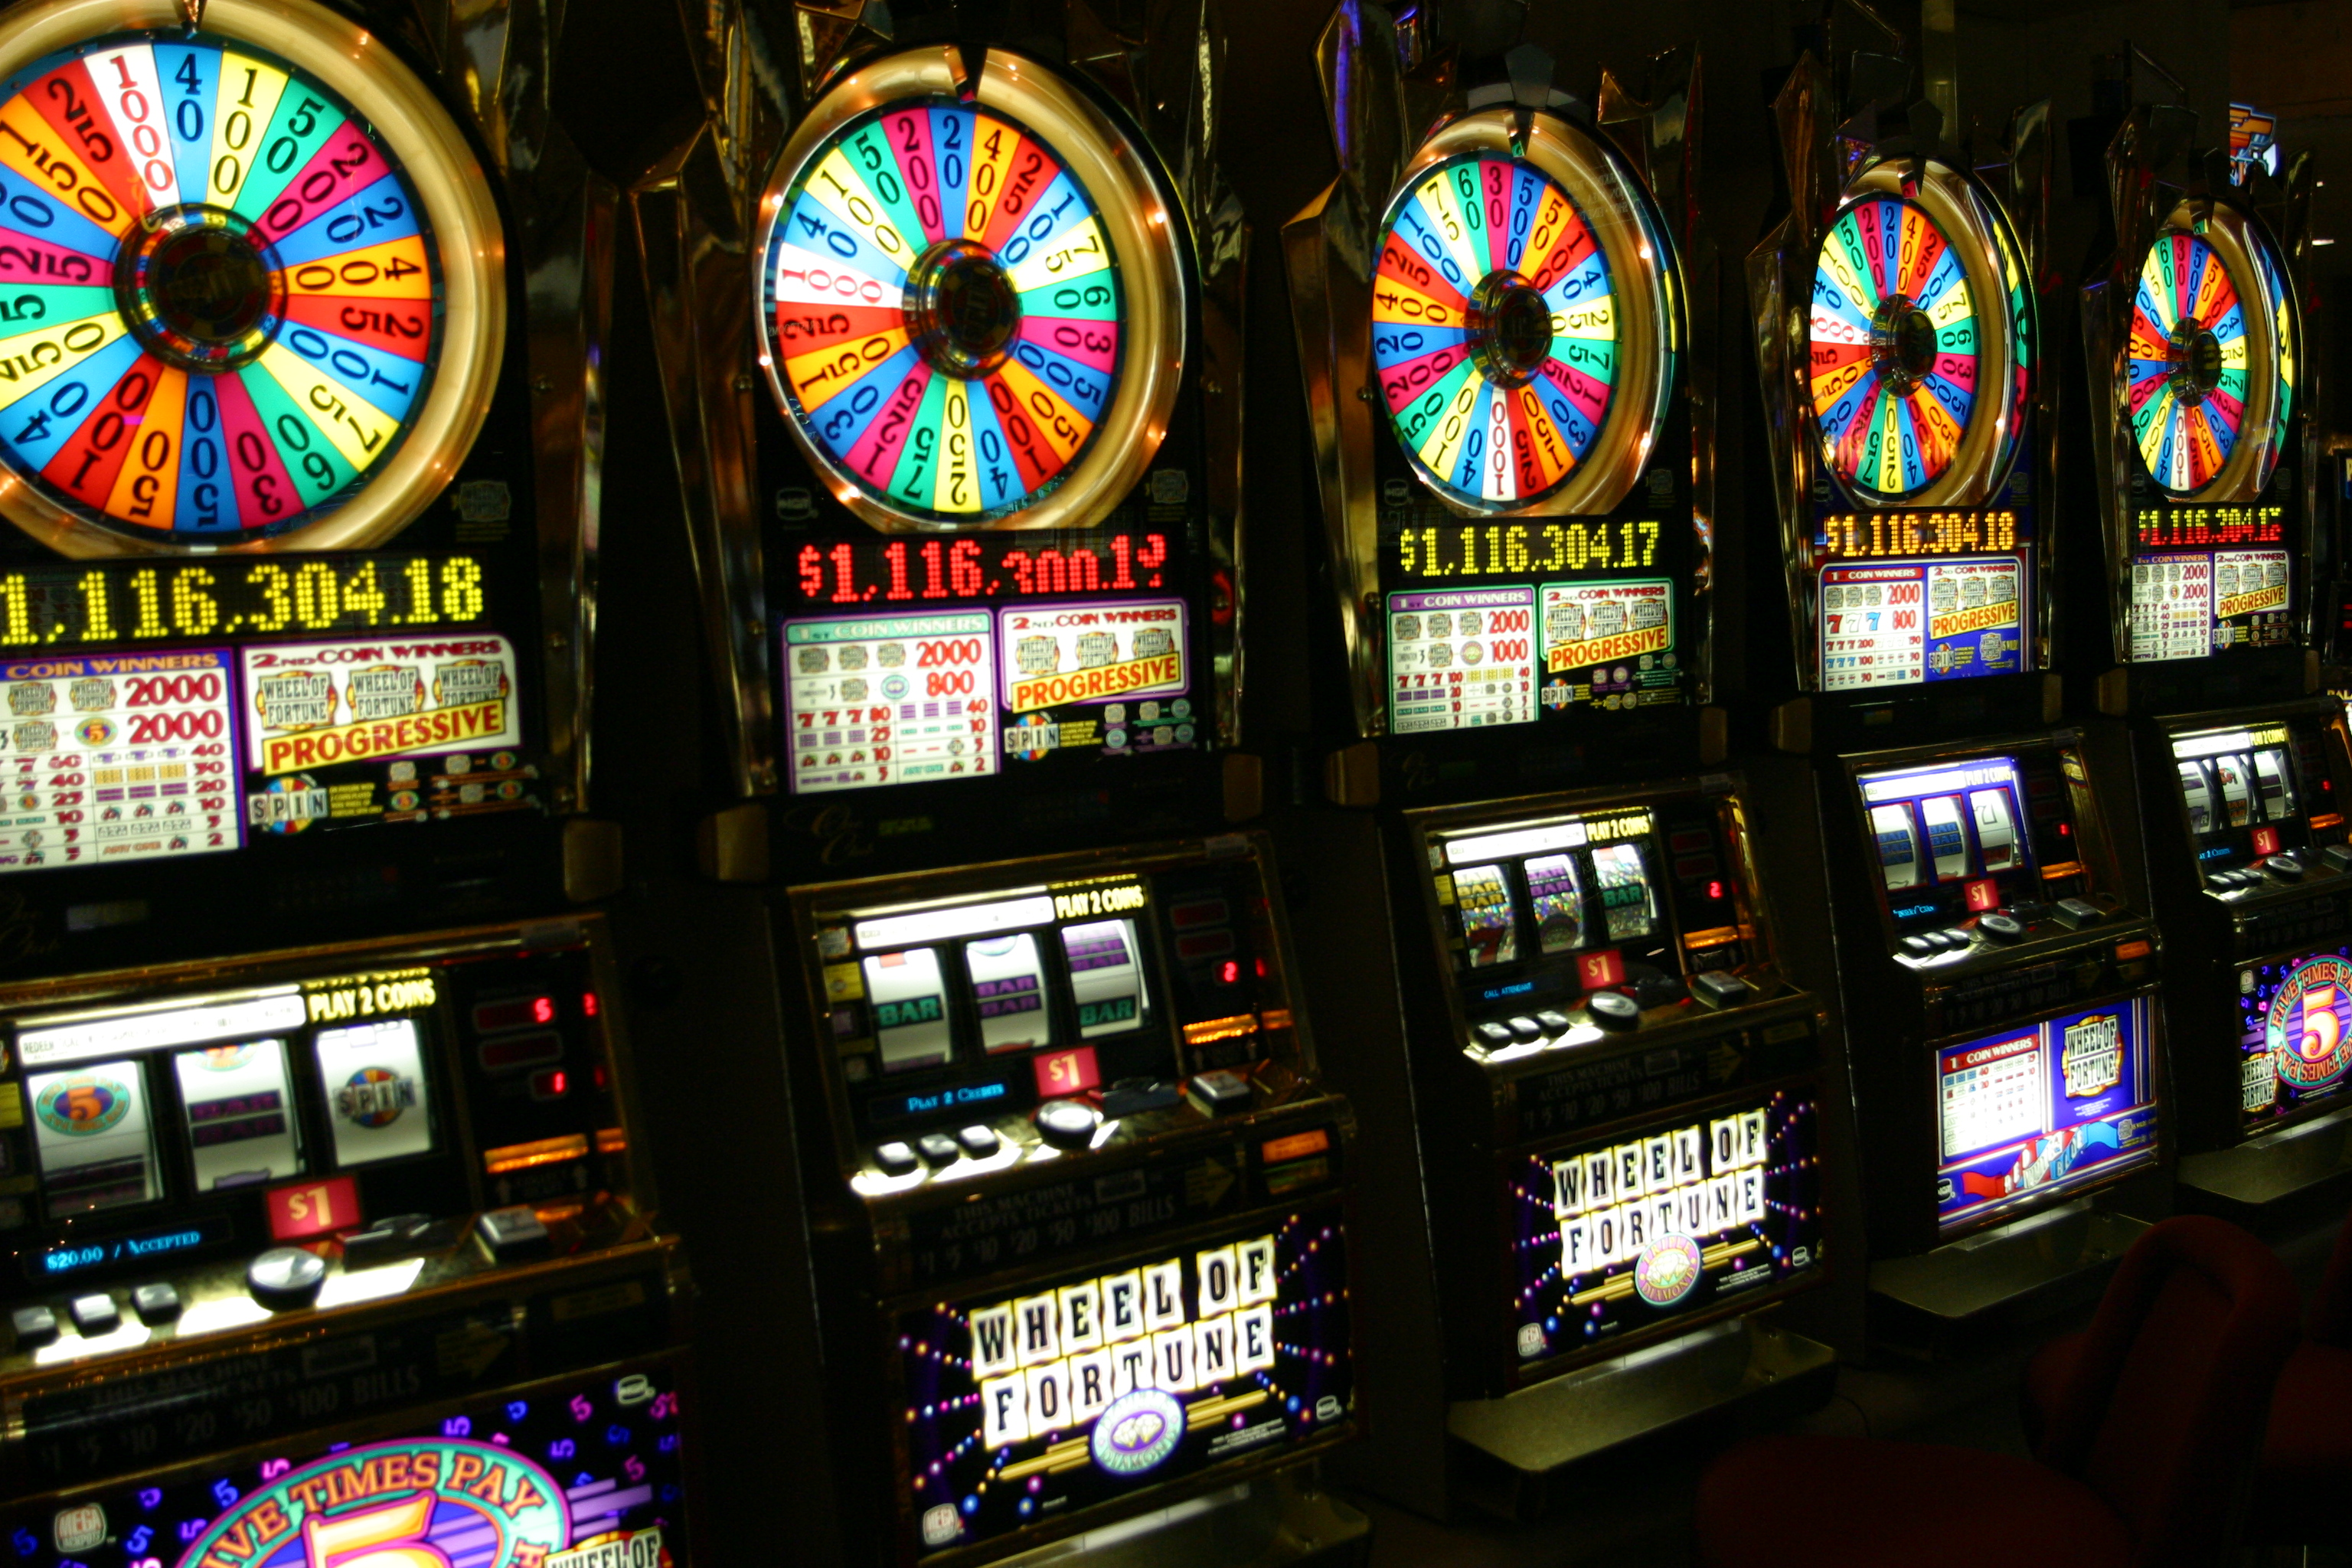 File:Vegas slots.JPG - Wikimedia Commons